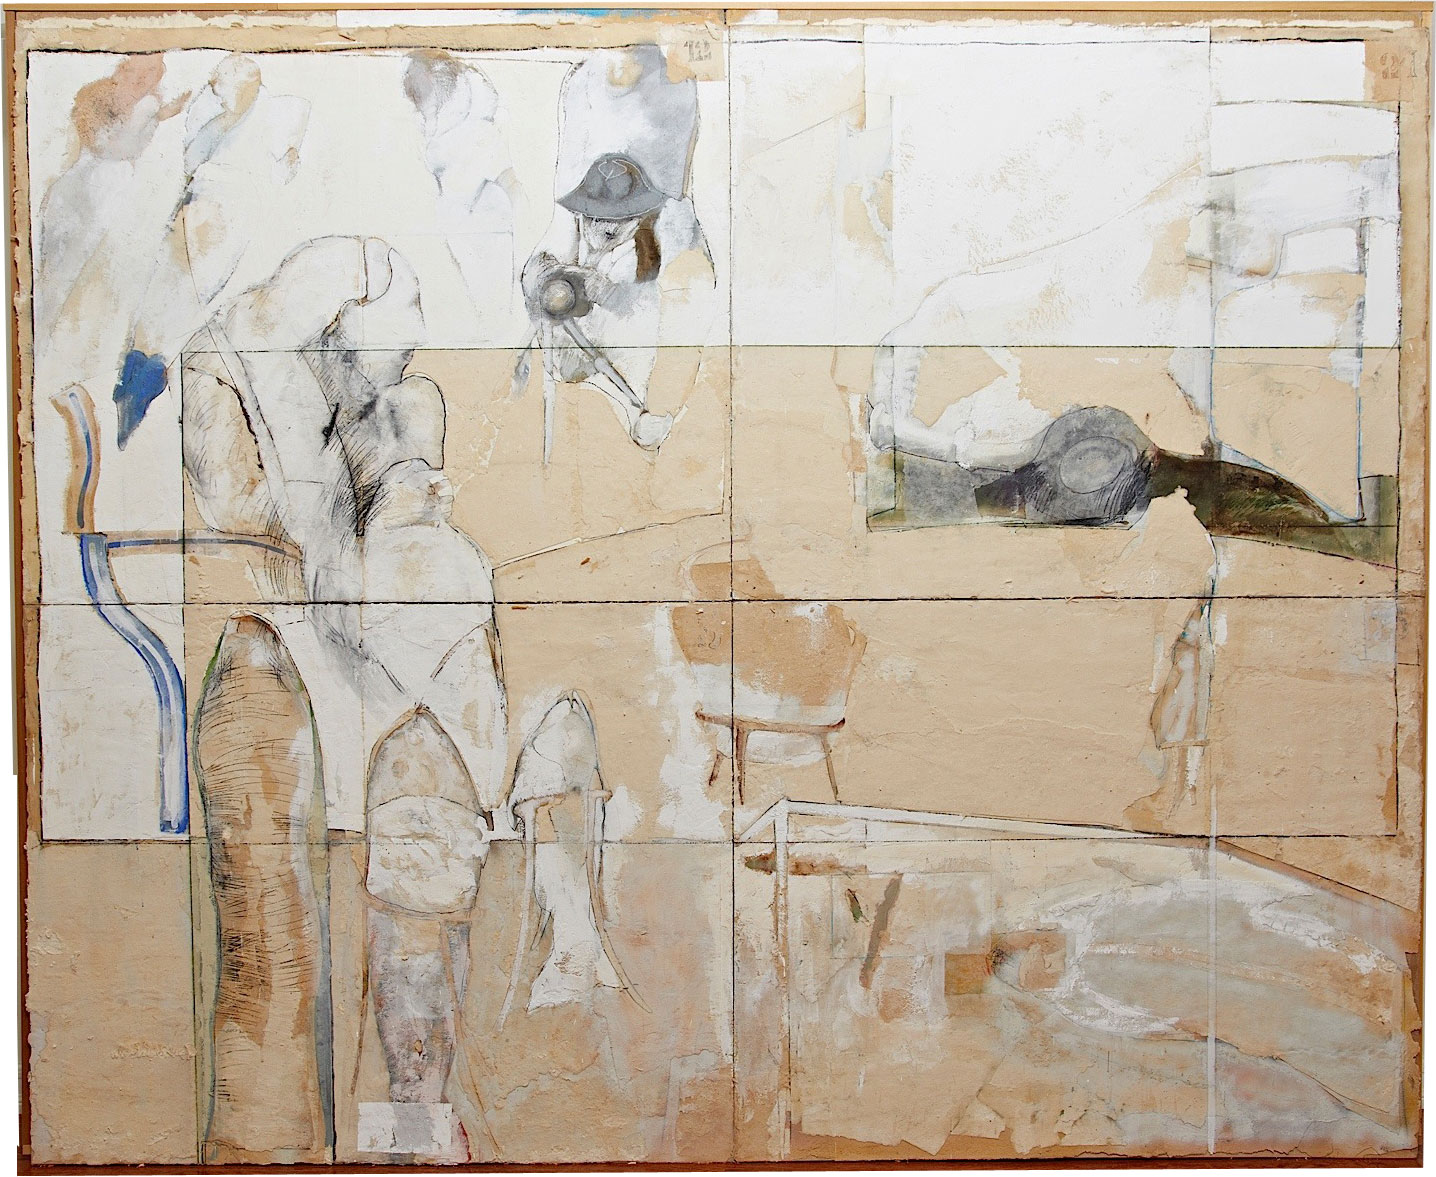 "Series White Dreams: ""The Space of Ideas"" (112"" x 91"") - Handmade cotton paper, canvas, oxides, and mixed medium"